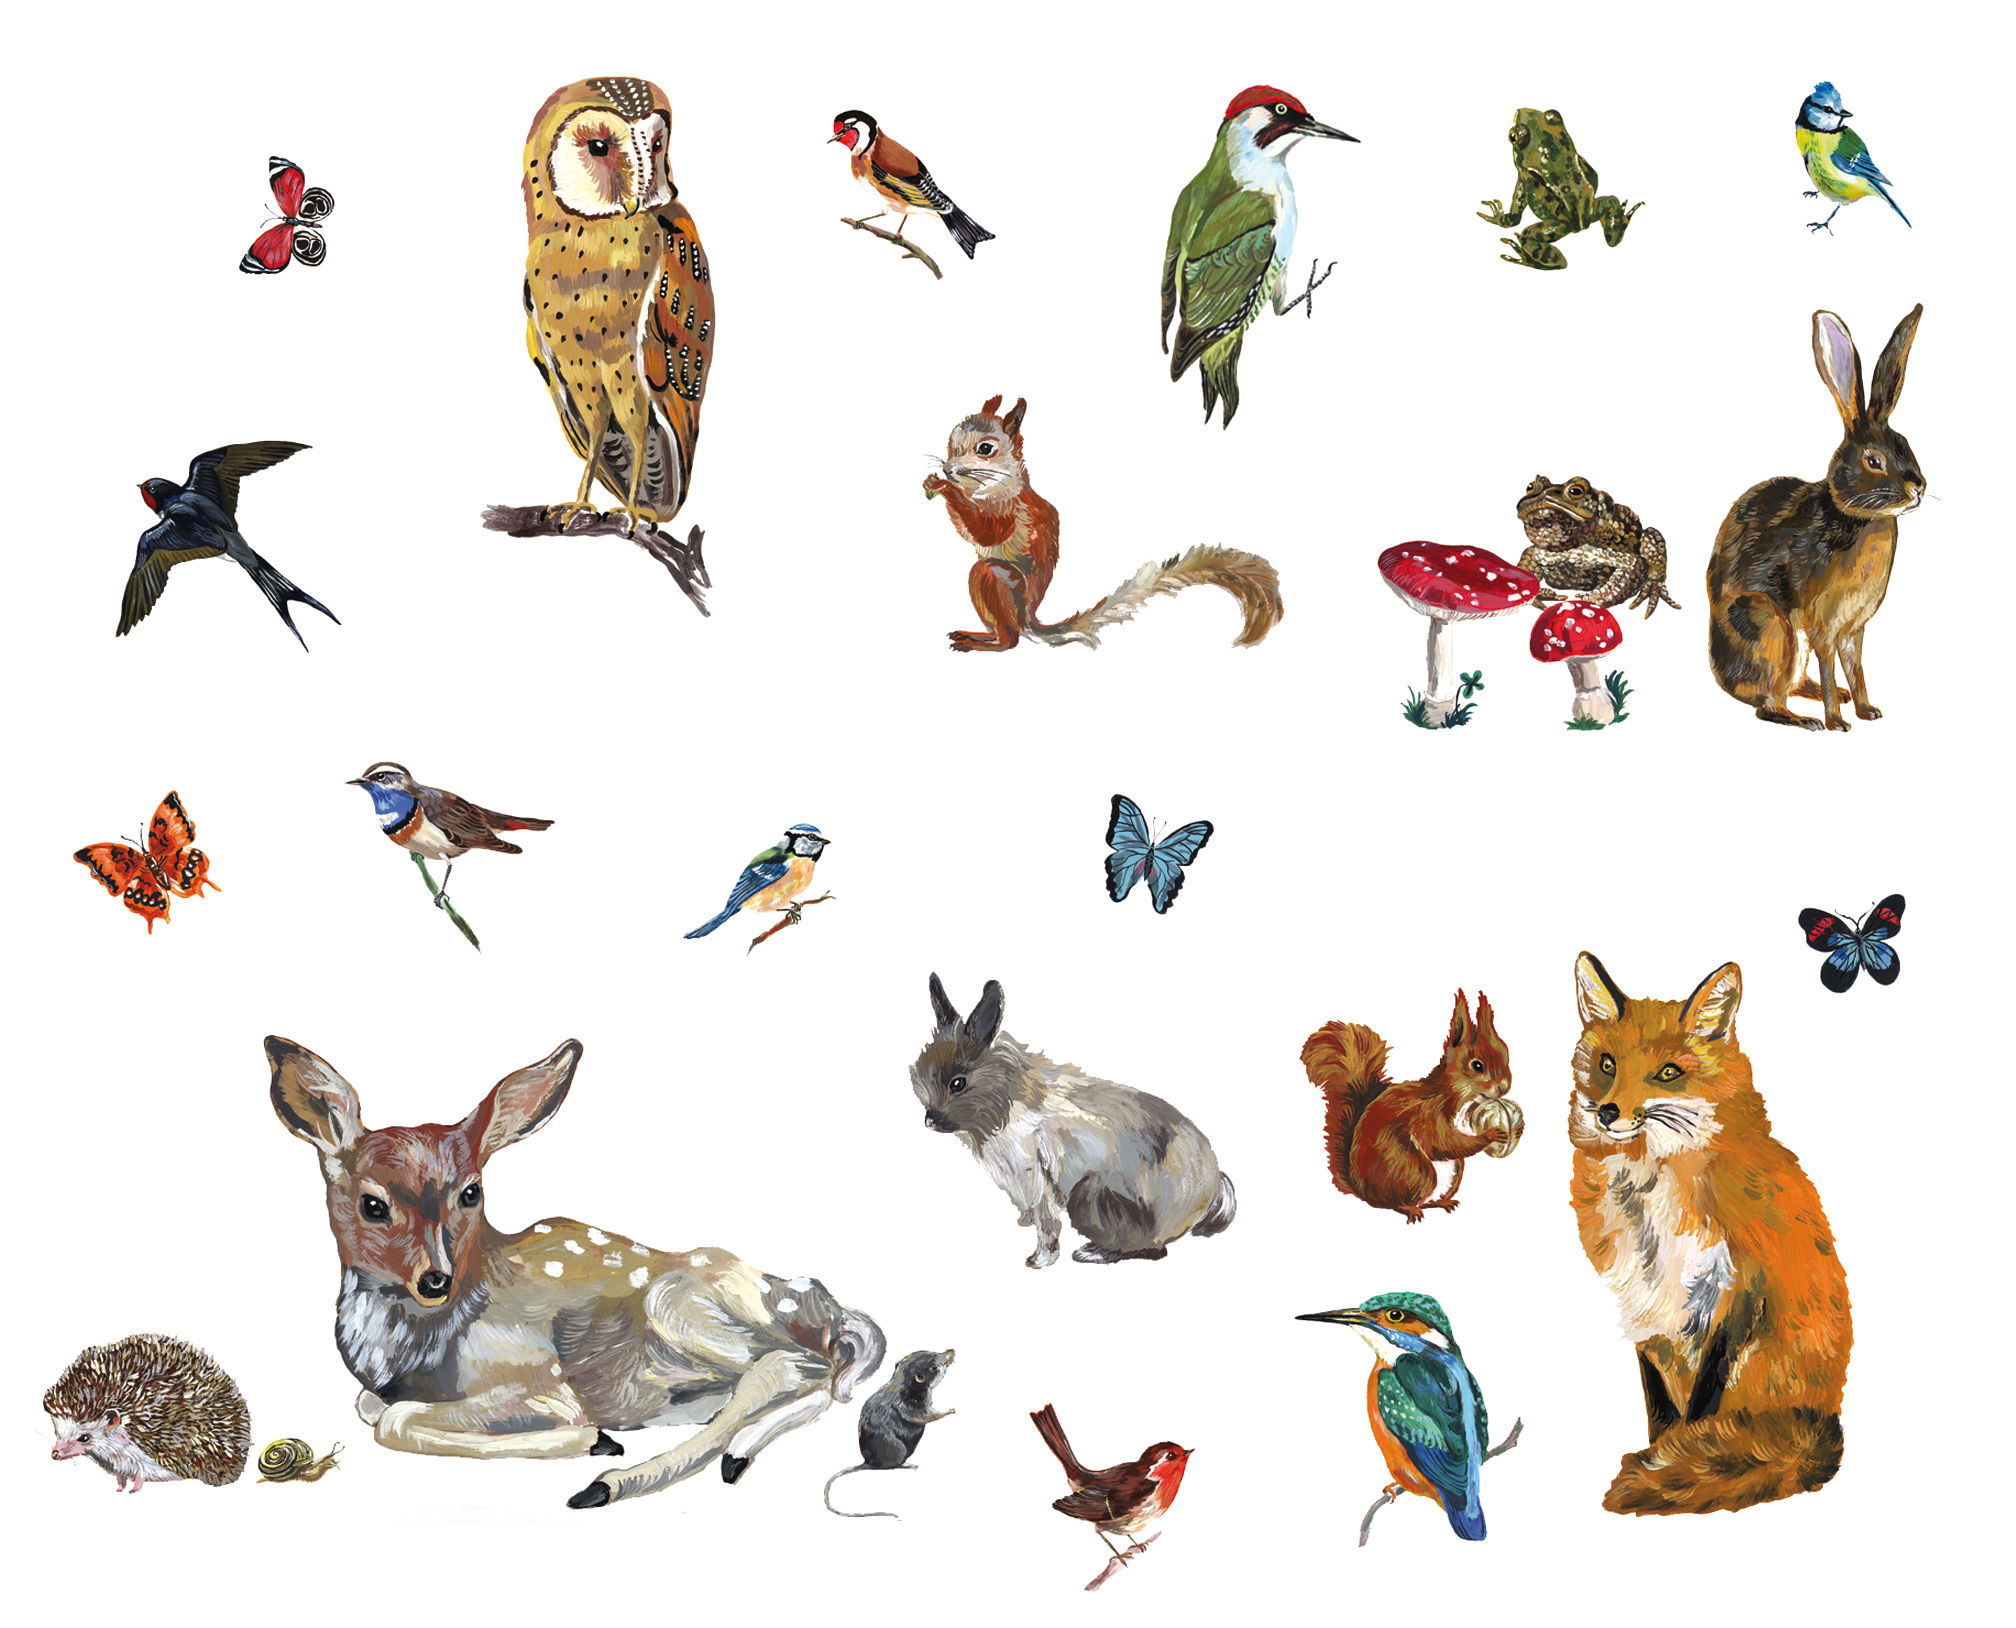 Déco - Pour les enfants - Sticker Les animaux 2 / Lot de 27 stickers - Domestic - Multicolore - 27 stickers - Vinyl